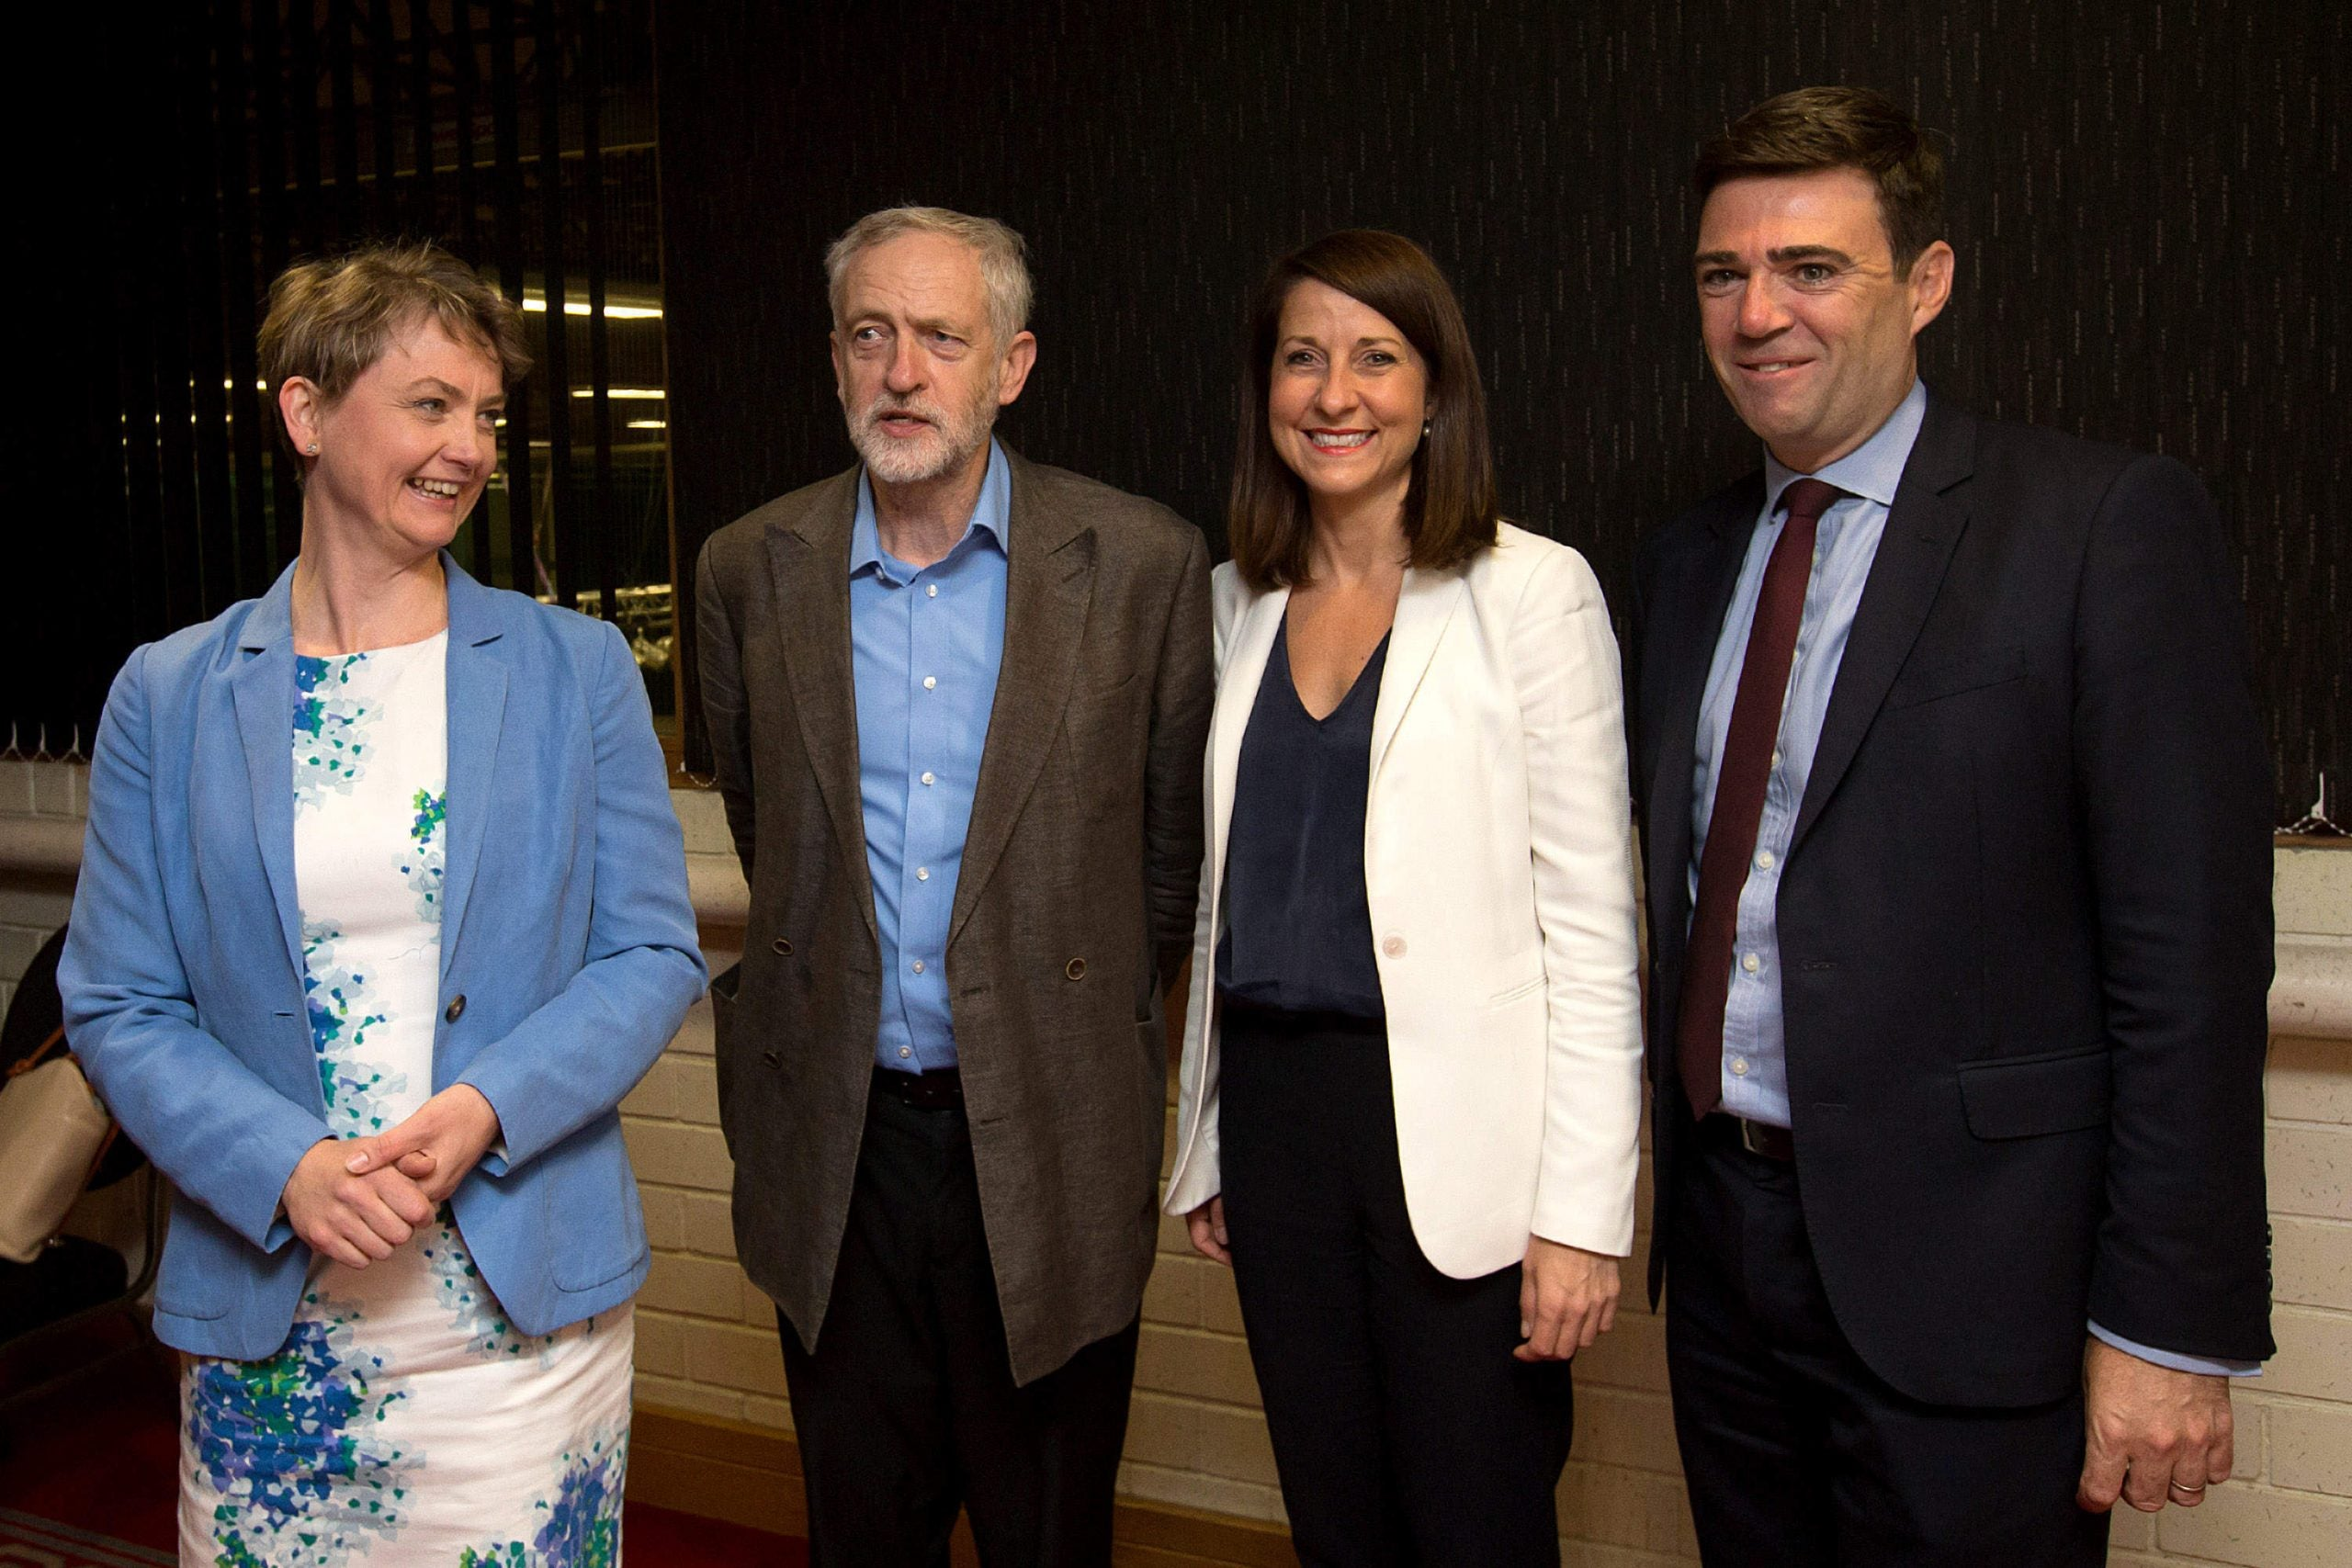 A To-Do List for the next Labour leader